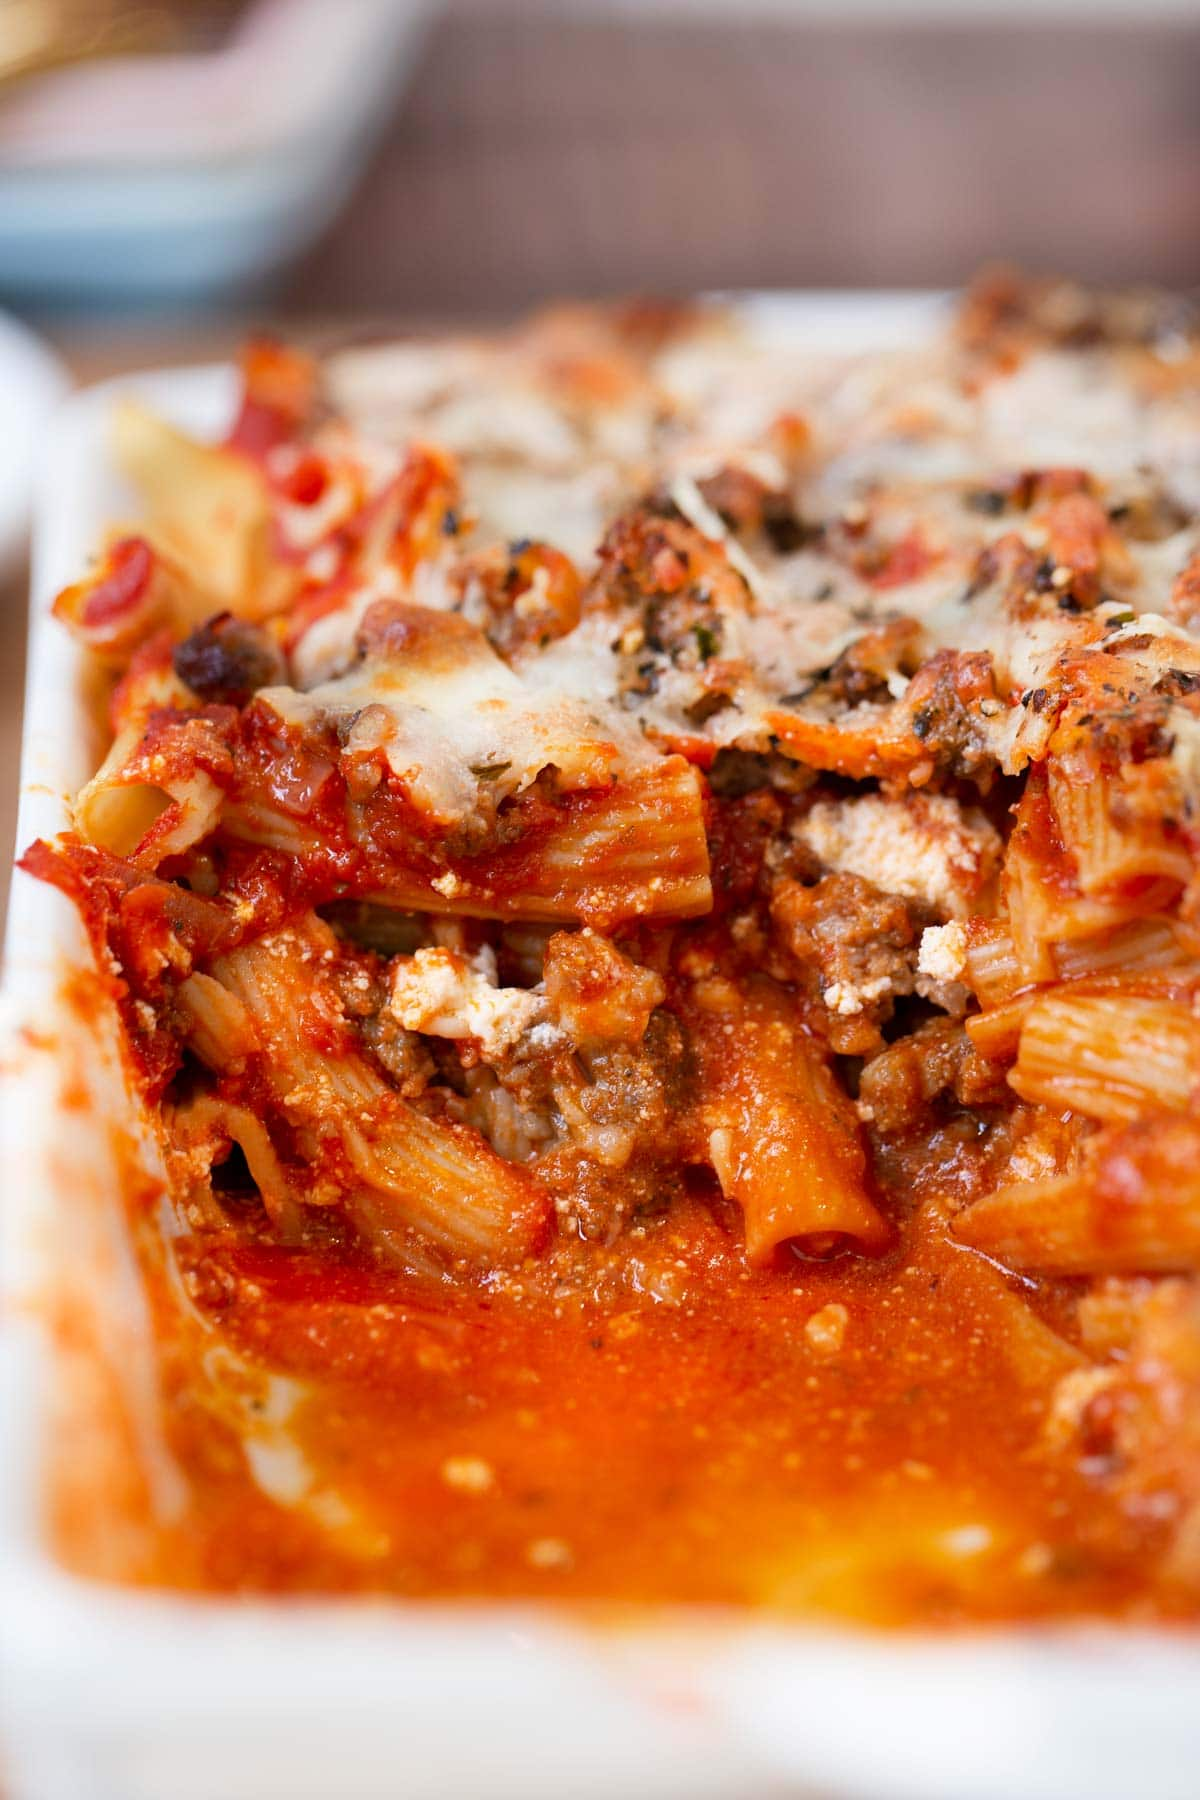 Cross section of Baked Ziti in baking pan